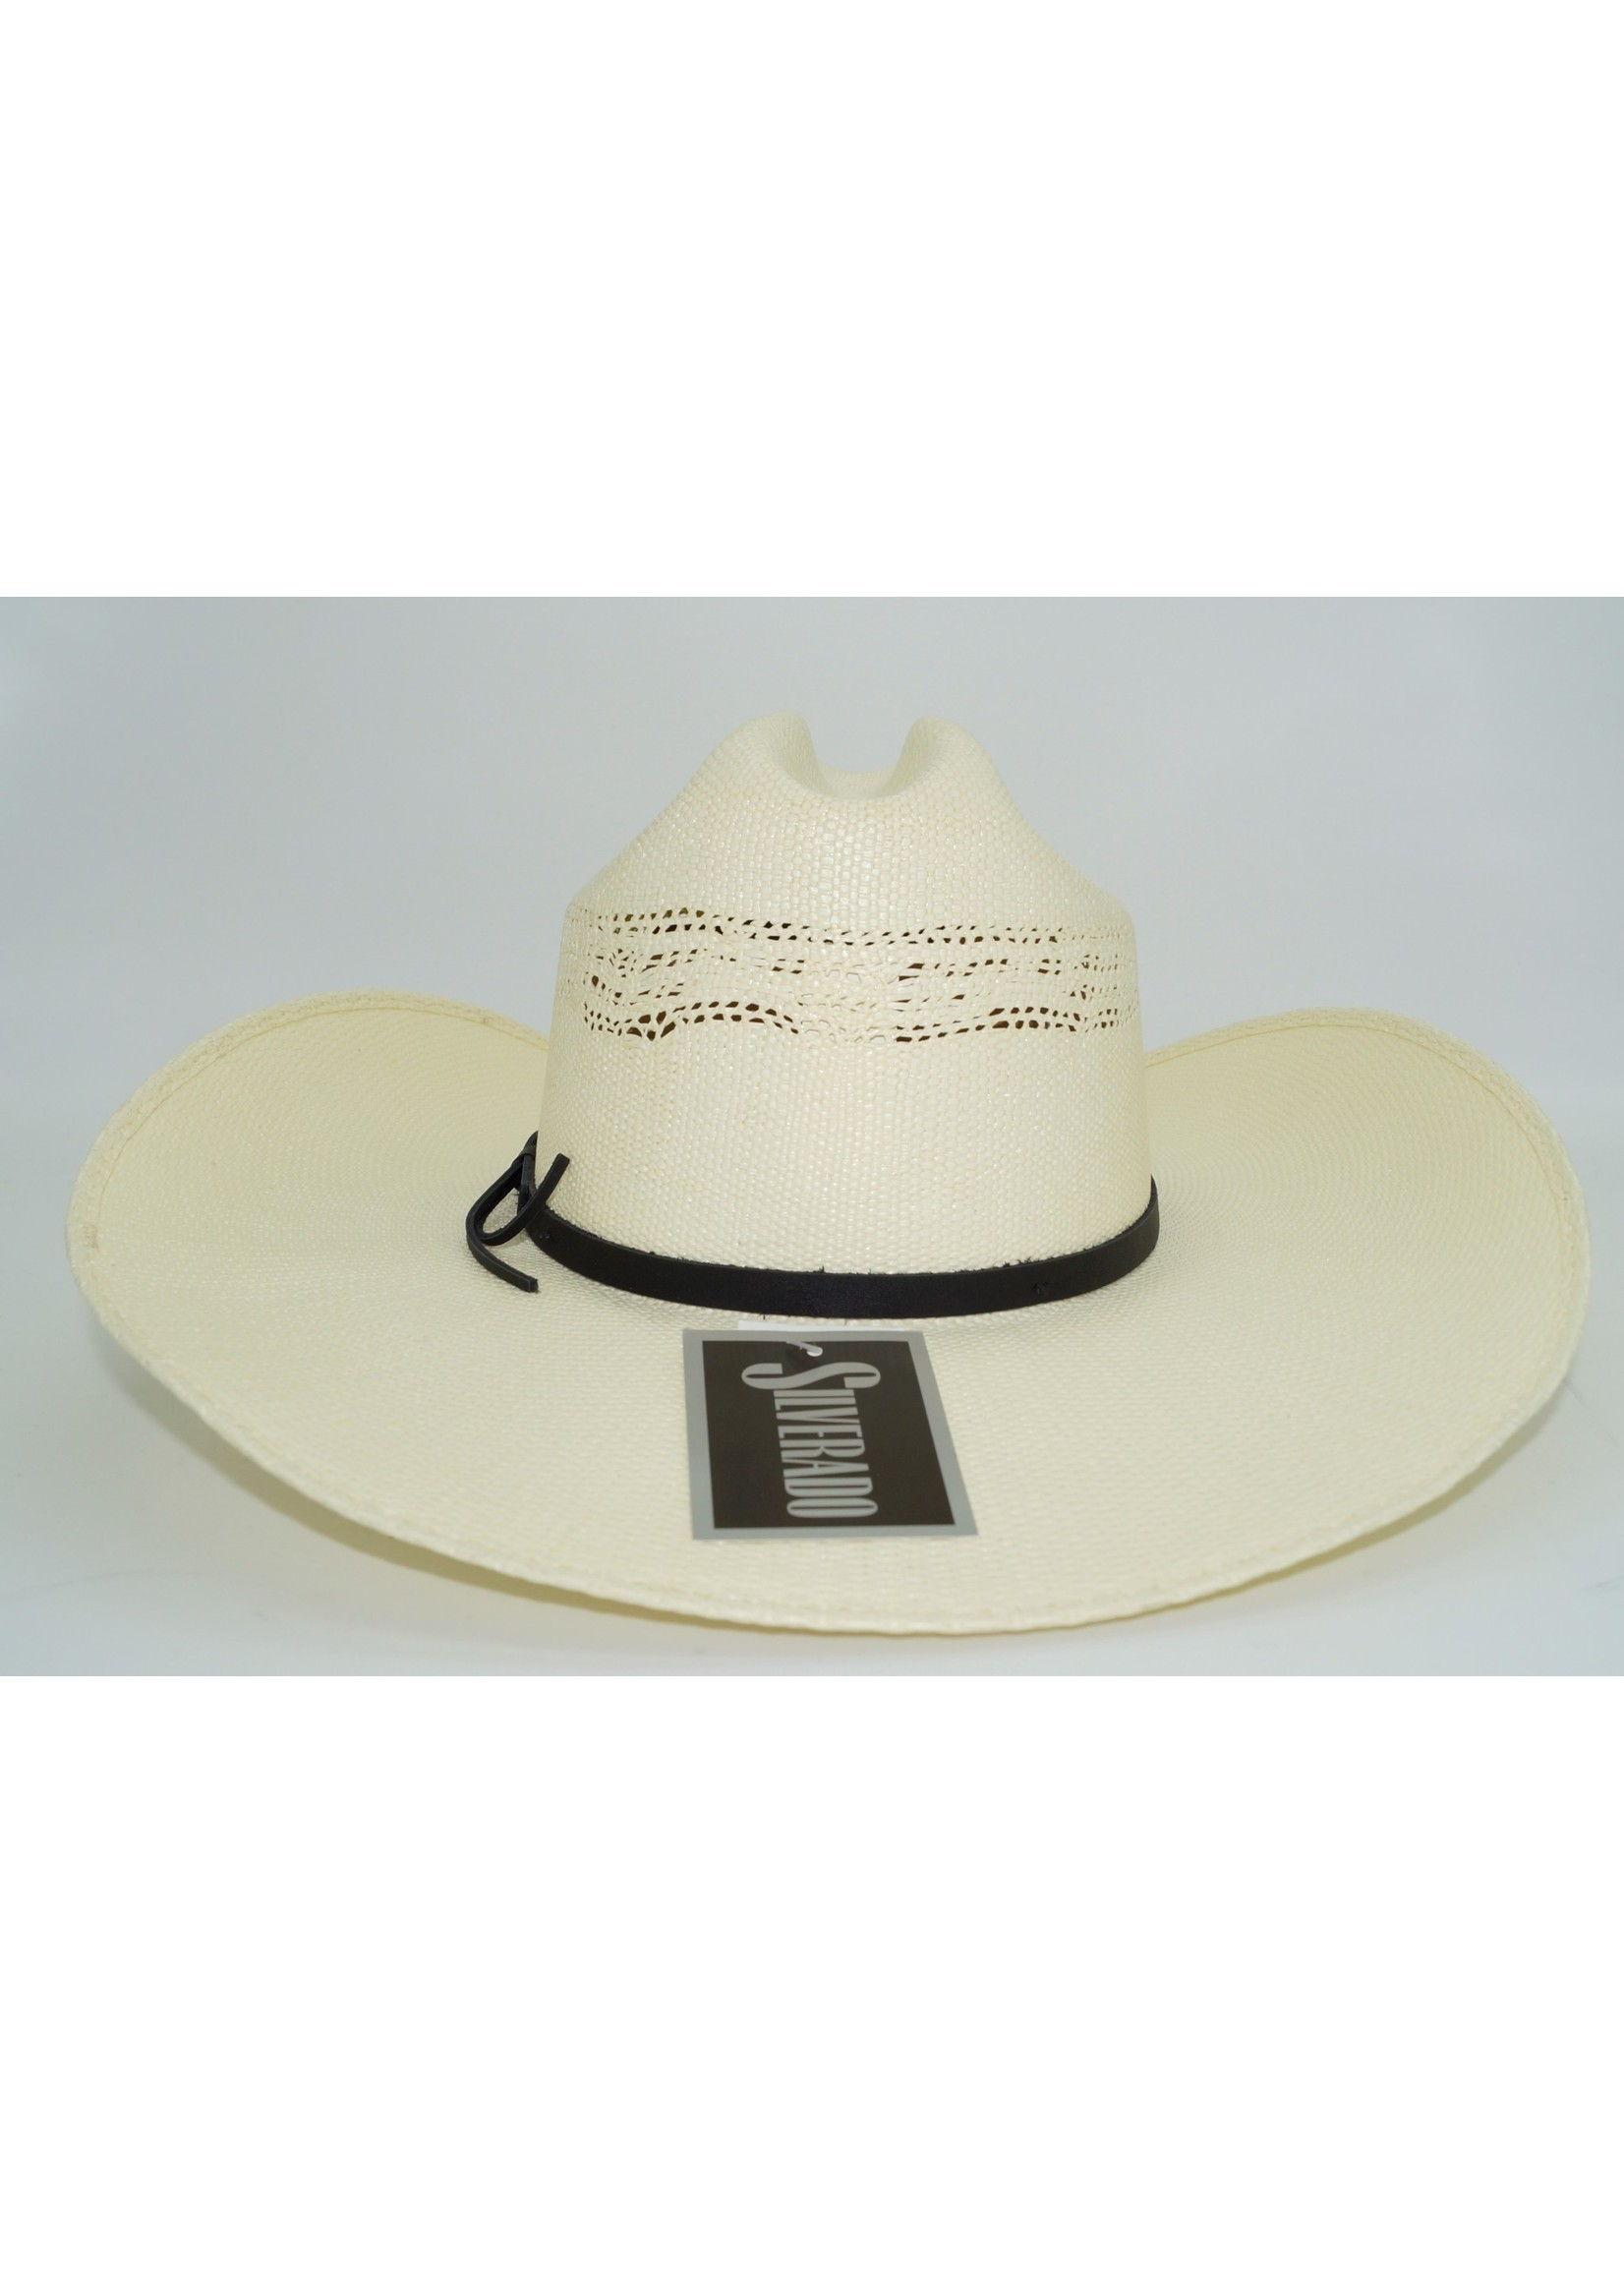 F&M Colorado /Cattleman Crease / Ivory Color